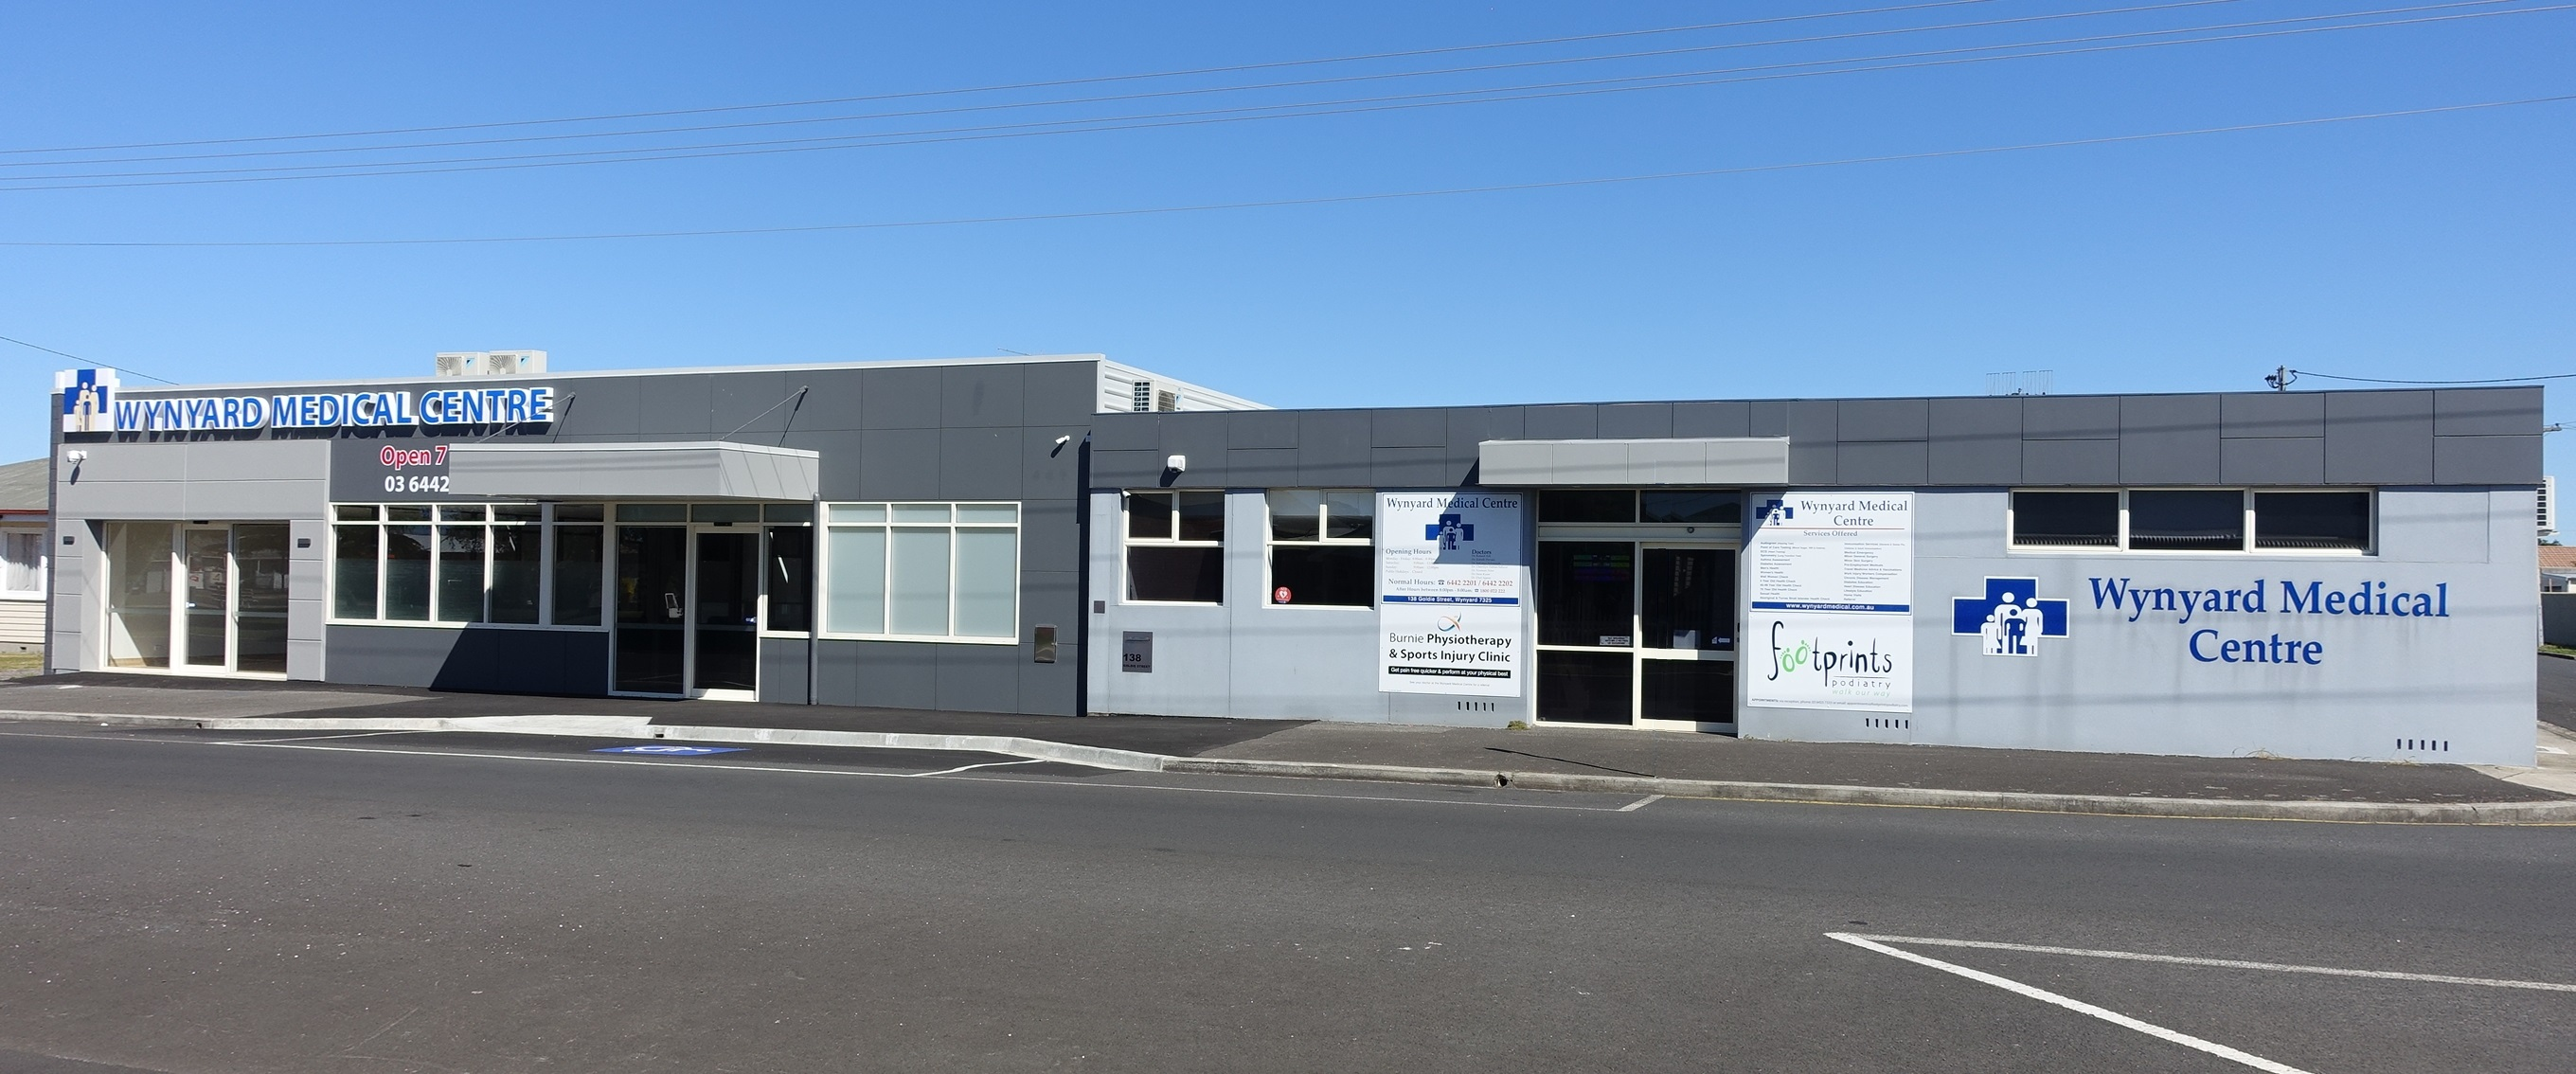 Wynyard Medical Centre Comprehesive Medical Centre For Your Community